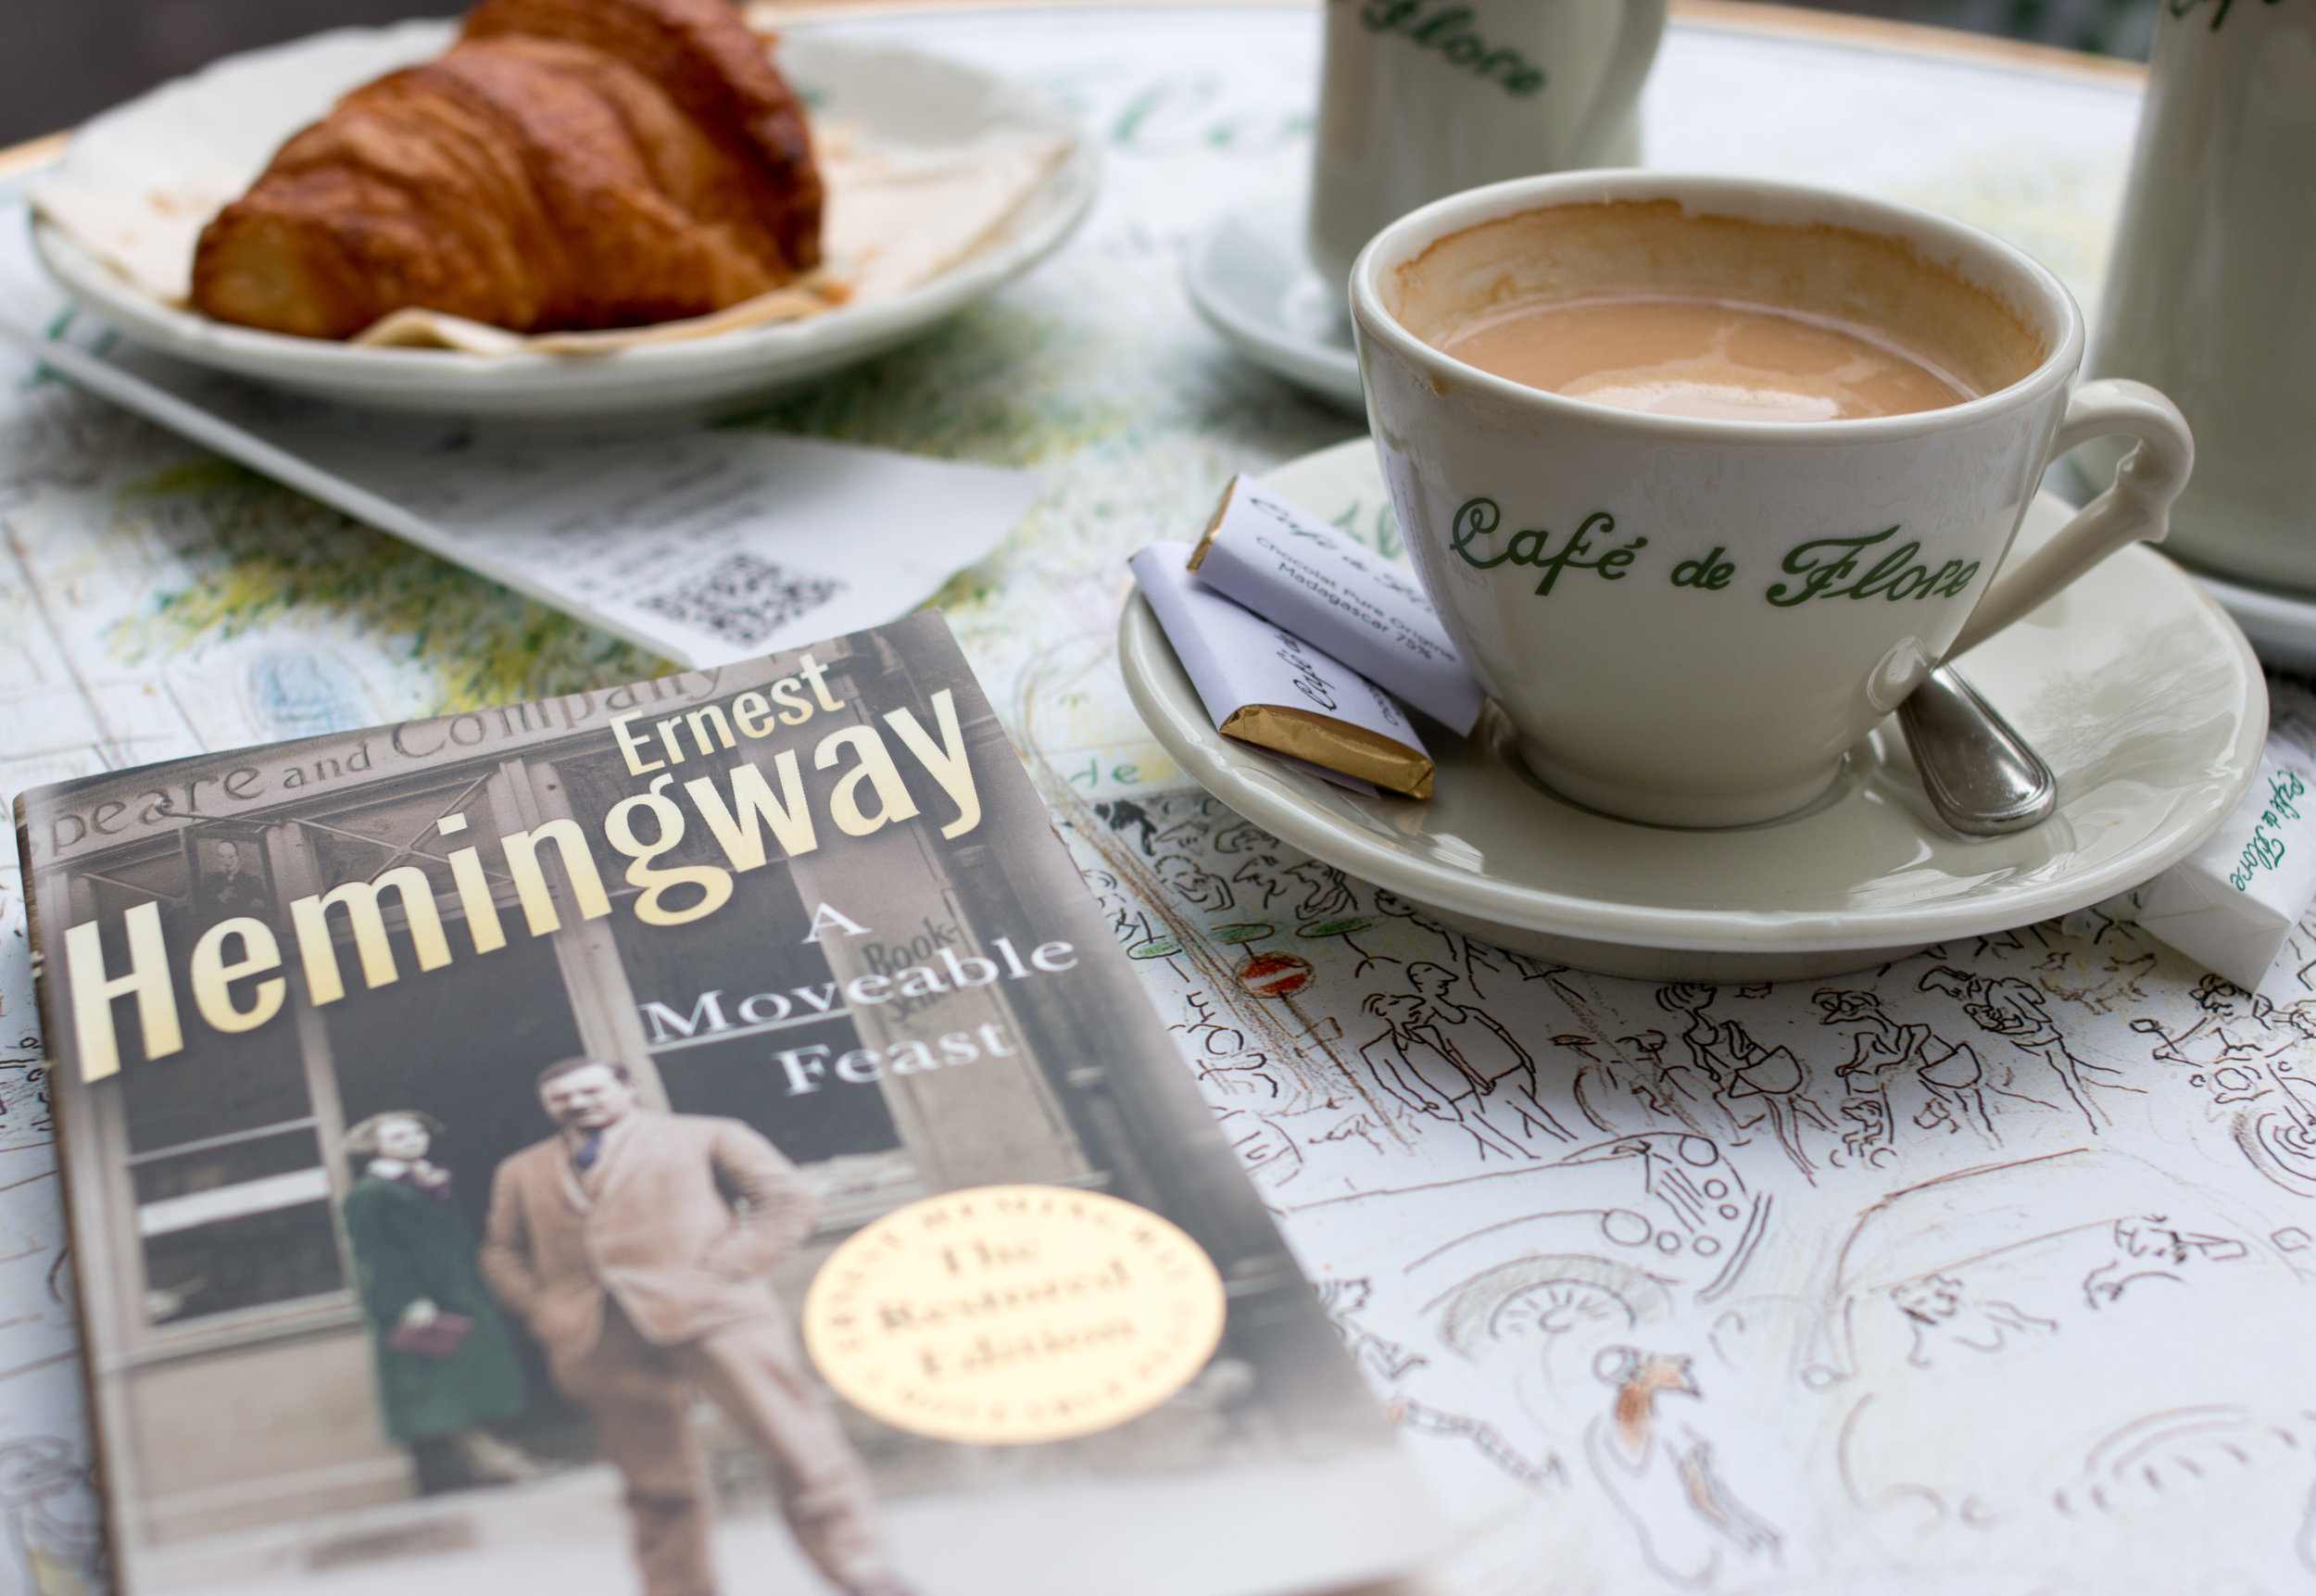 a moveable feast hemingway paris france